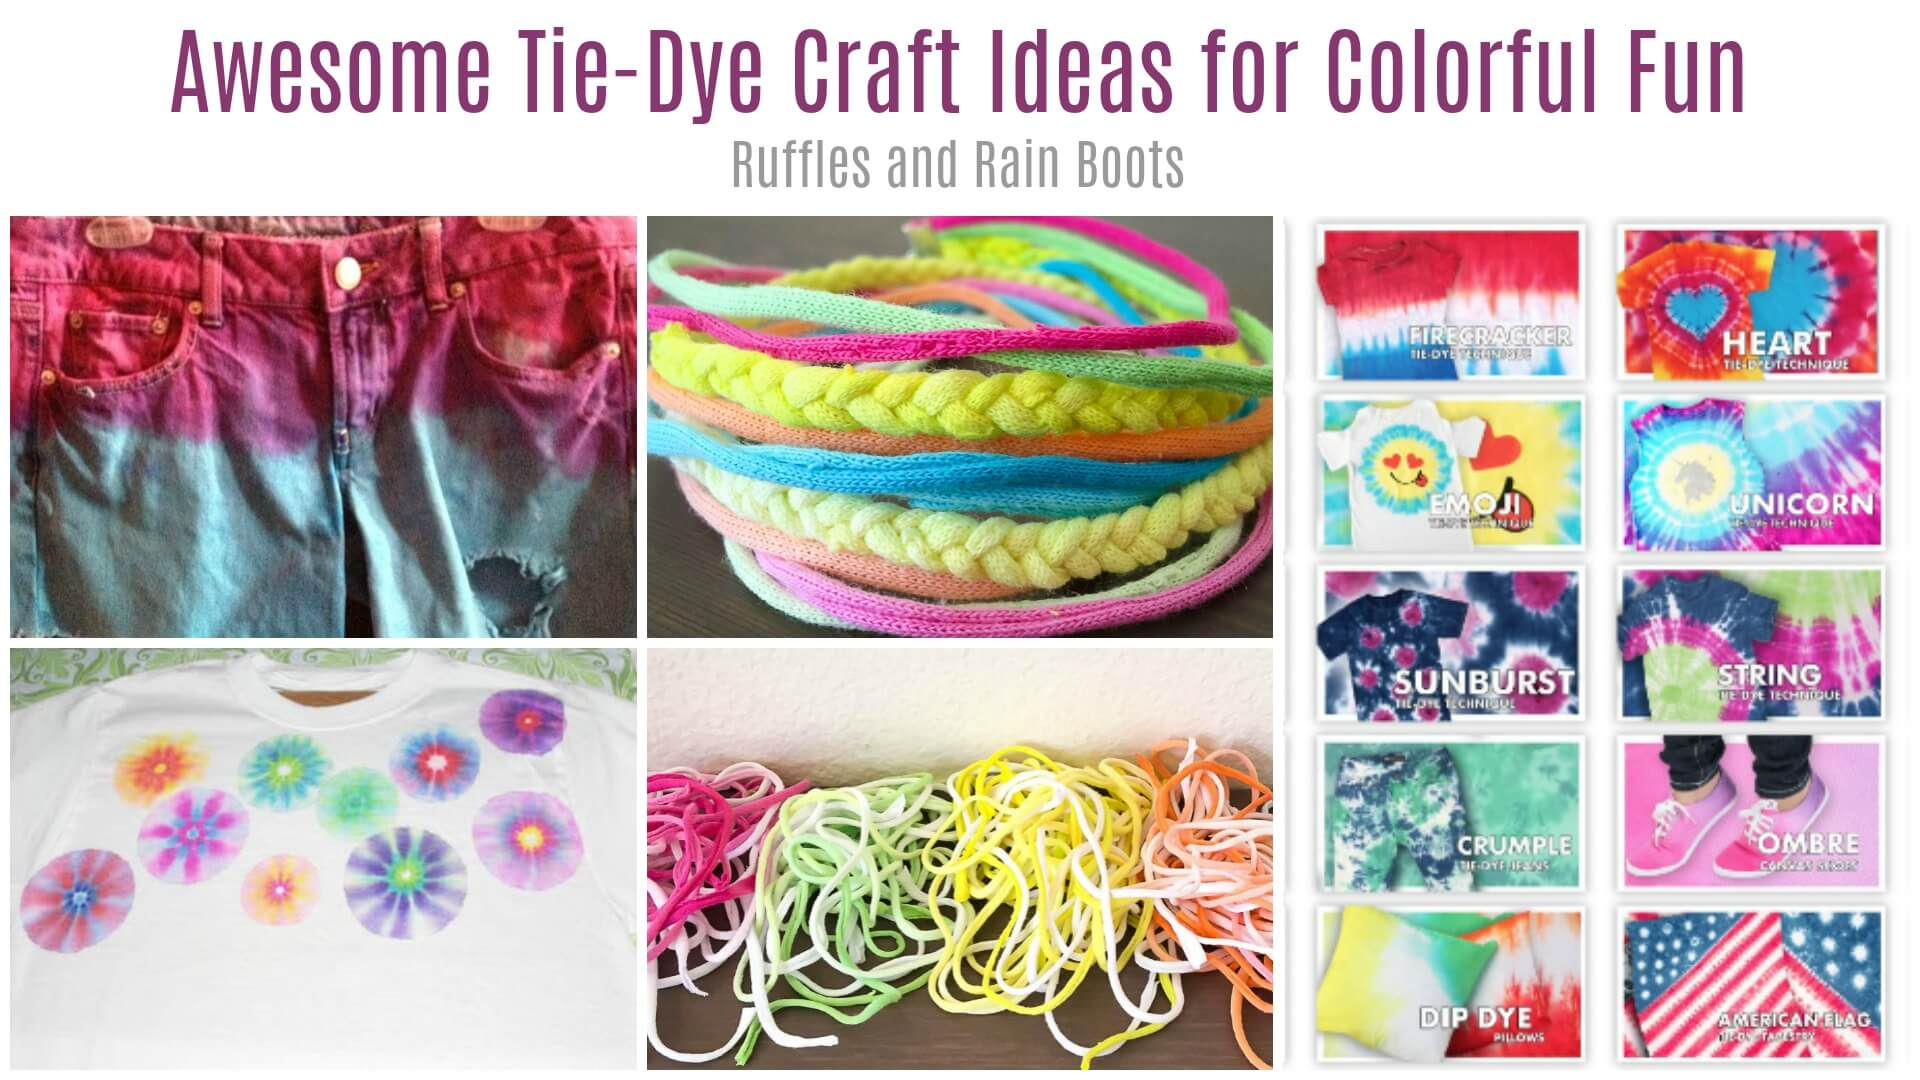 Tie Dye Craft Ideas for Colorful Science Fun